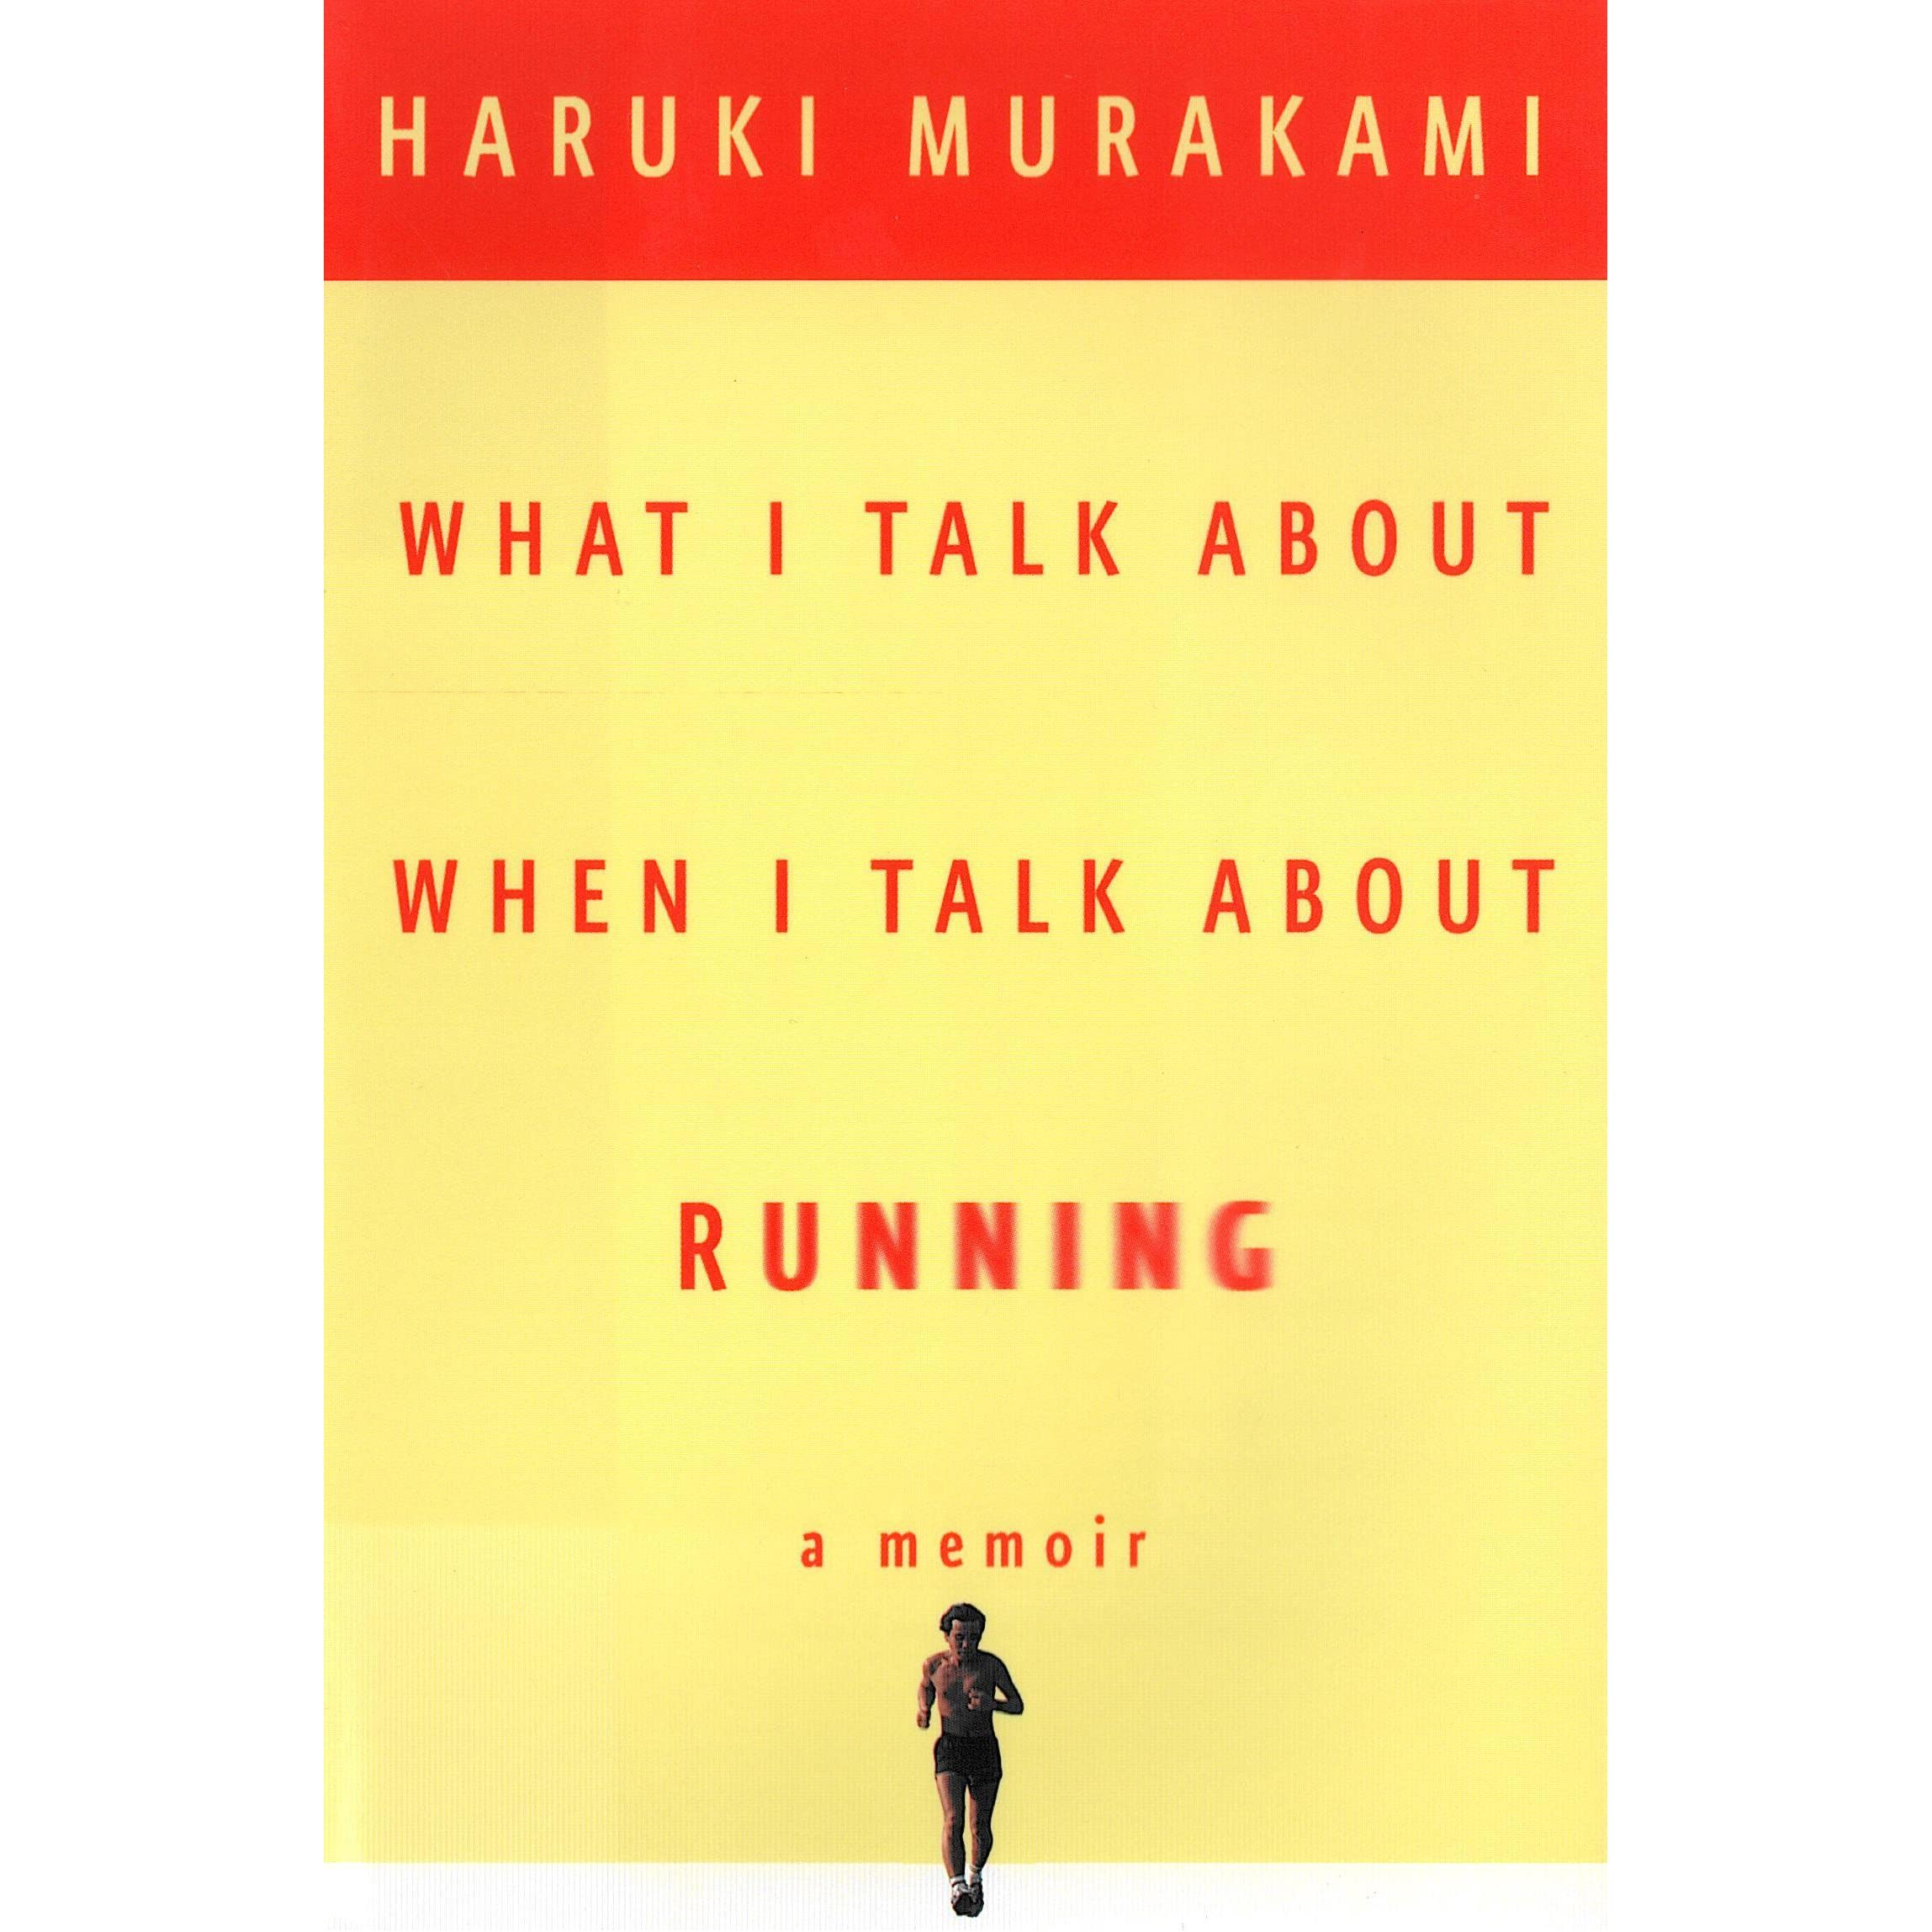 Hate Running Then Youre Going To Love This Compelling Case For Trading Jogging For Walking